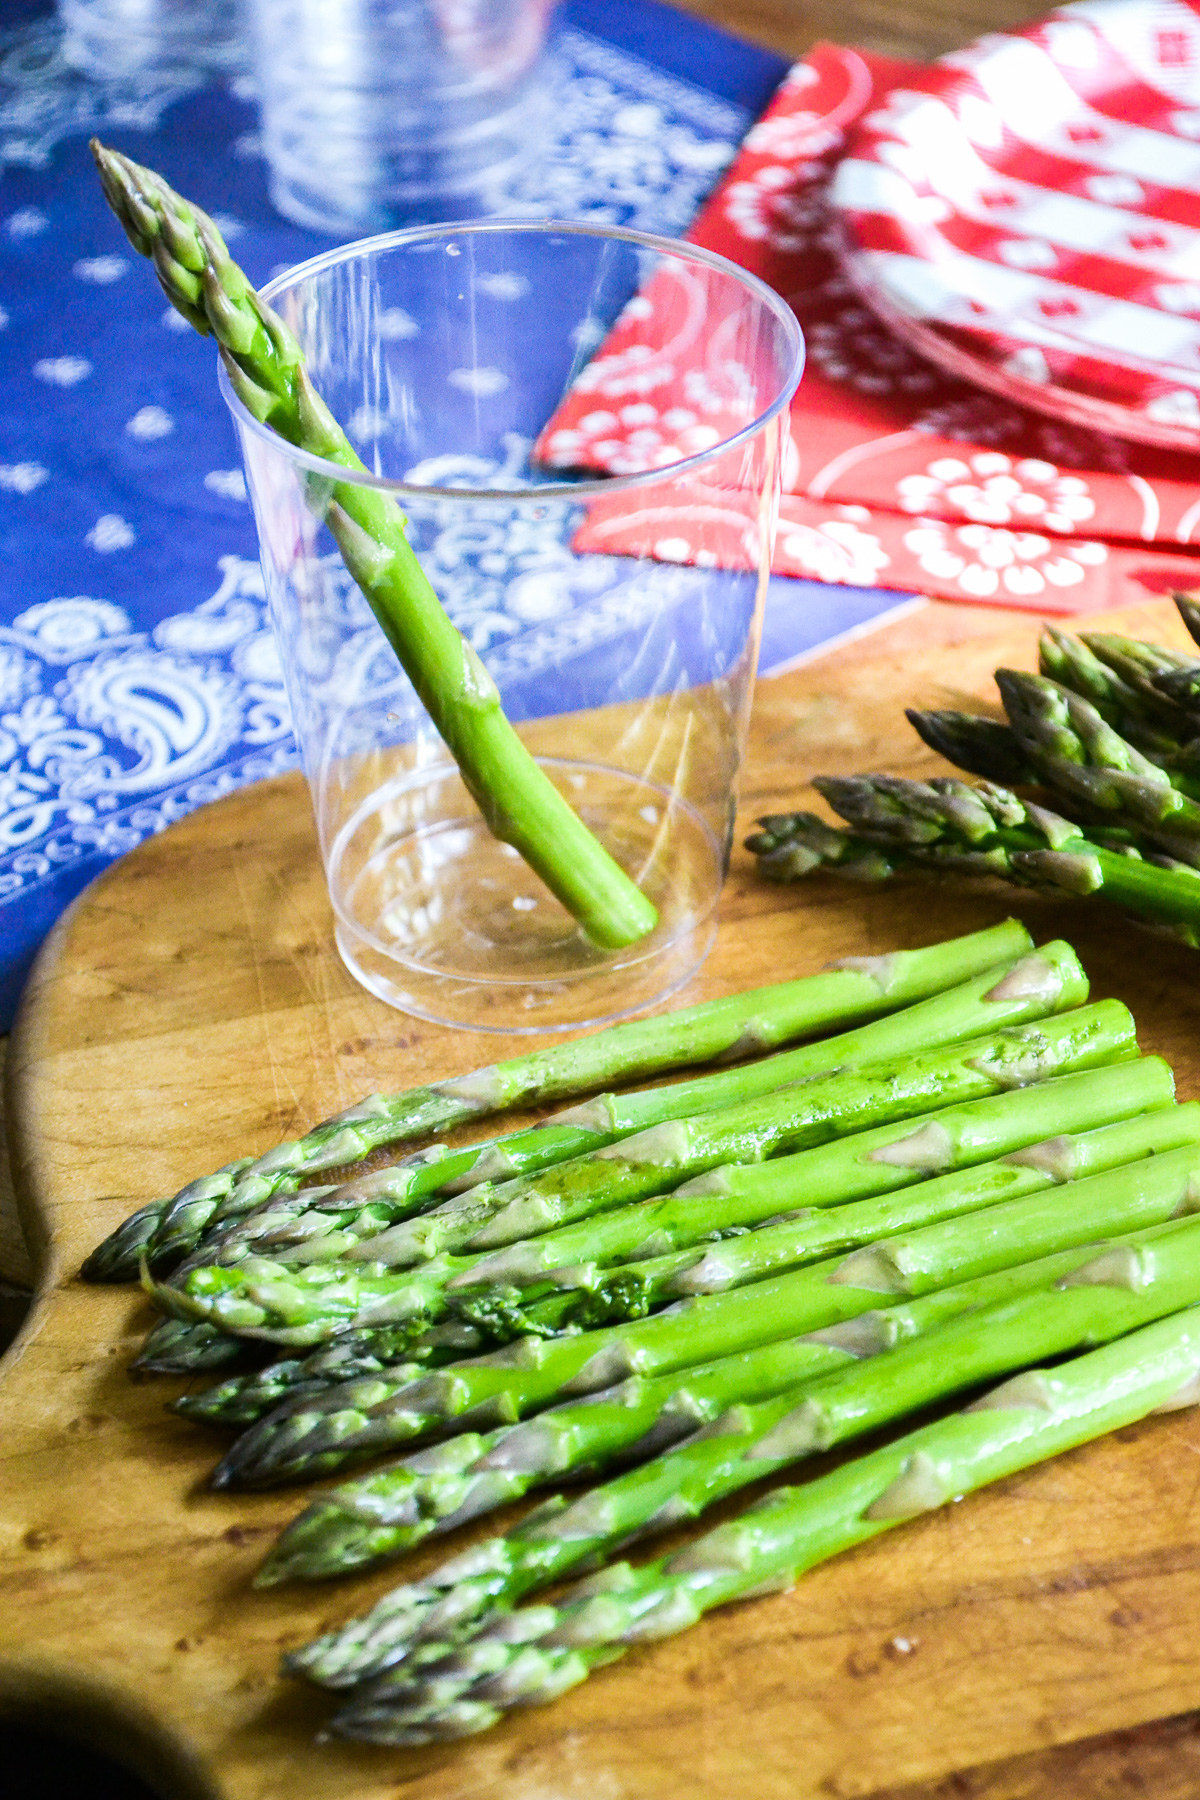 Asparagus stalks ready for green goddess veggie dip cups